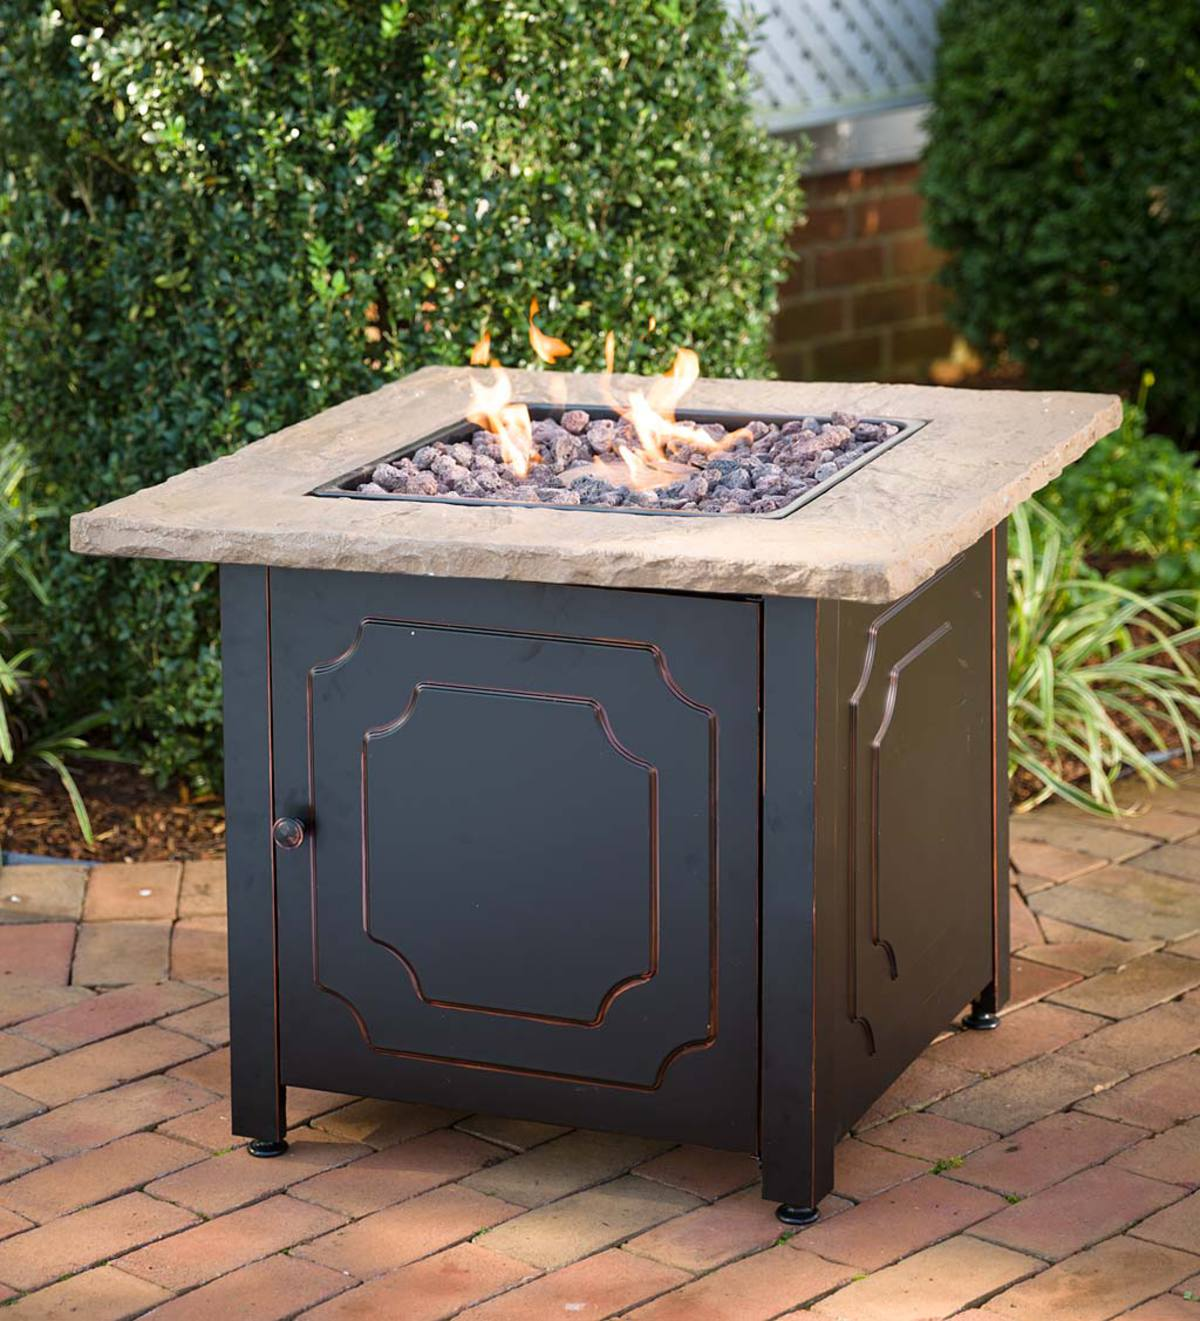 Chiseled Stone Propane Fire Pit with Cover